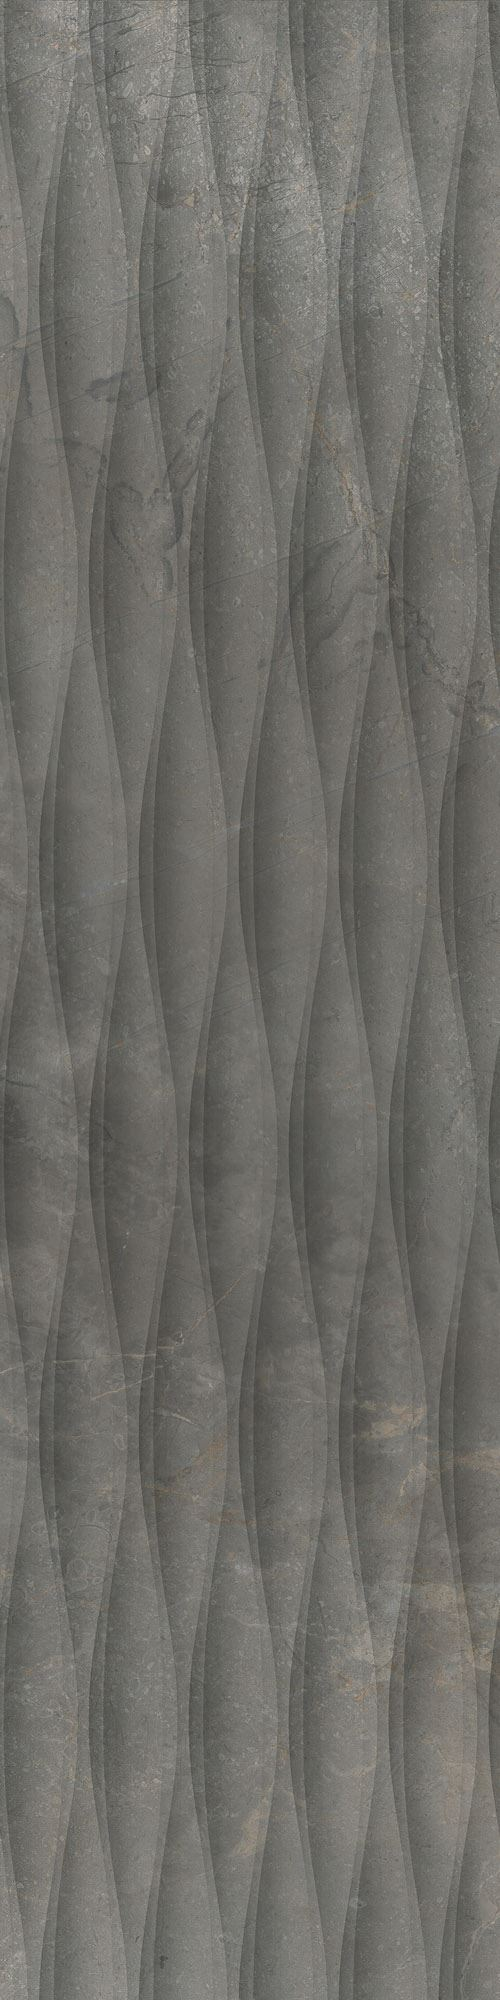 Cerrad Masterstone Graphite Decor waves MAT